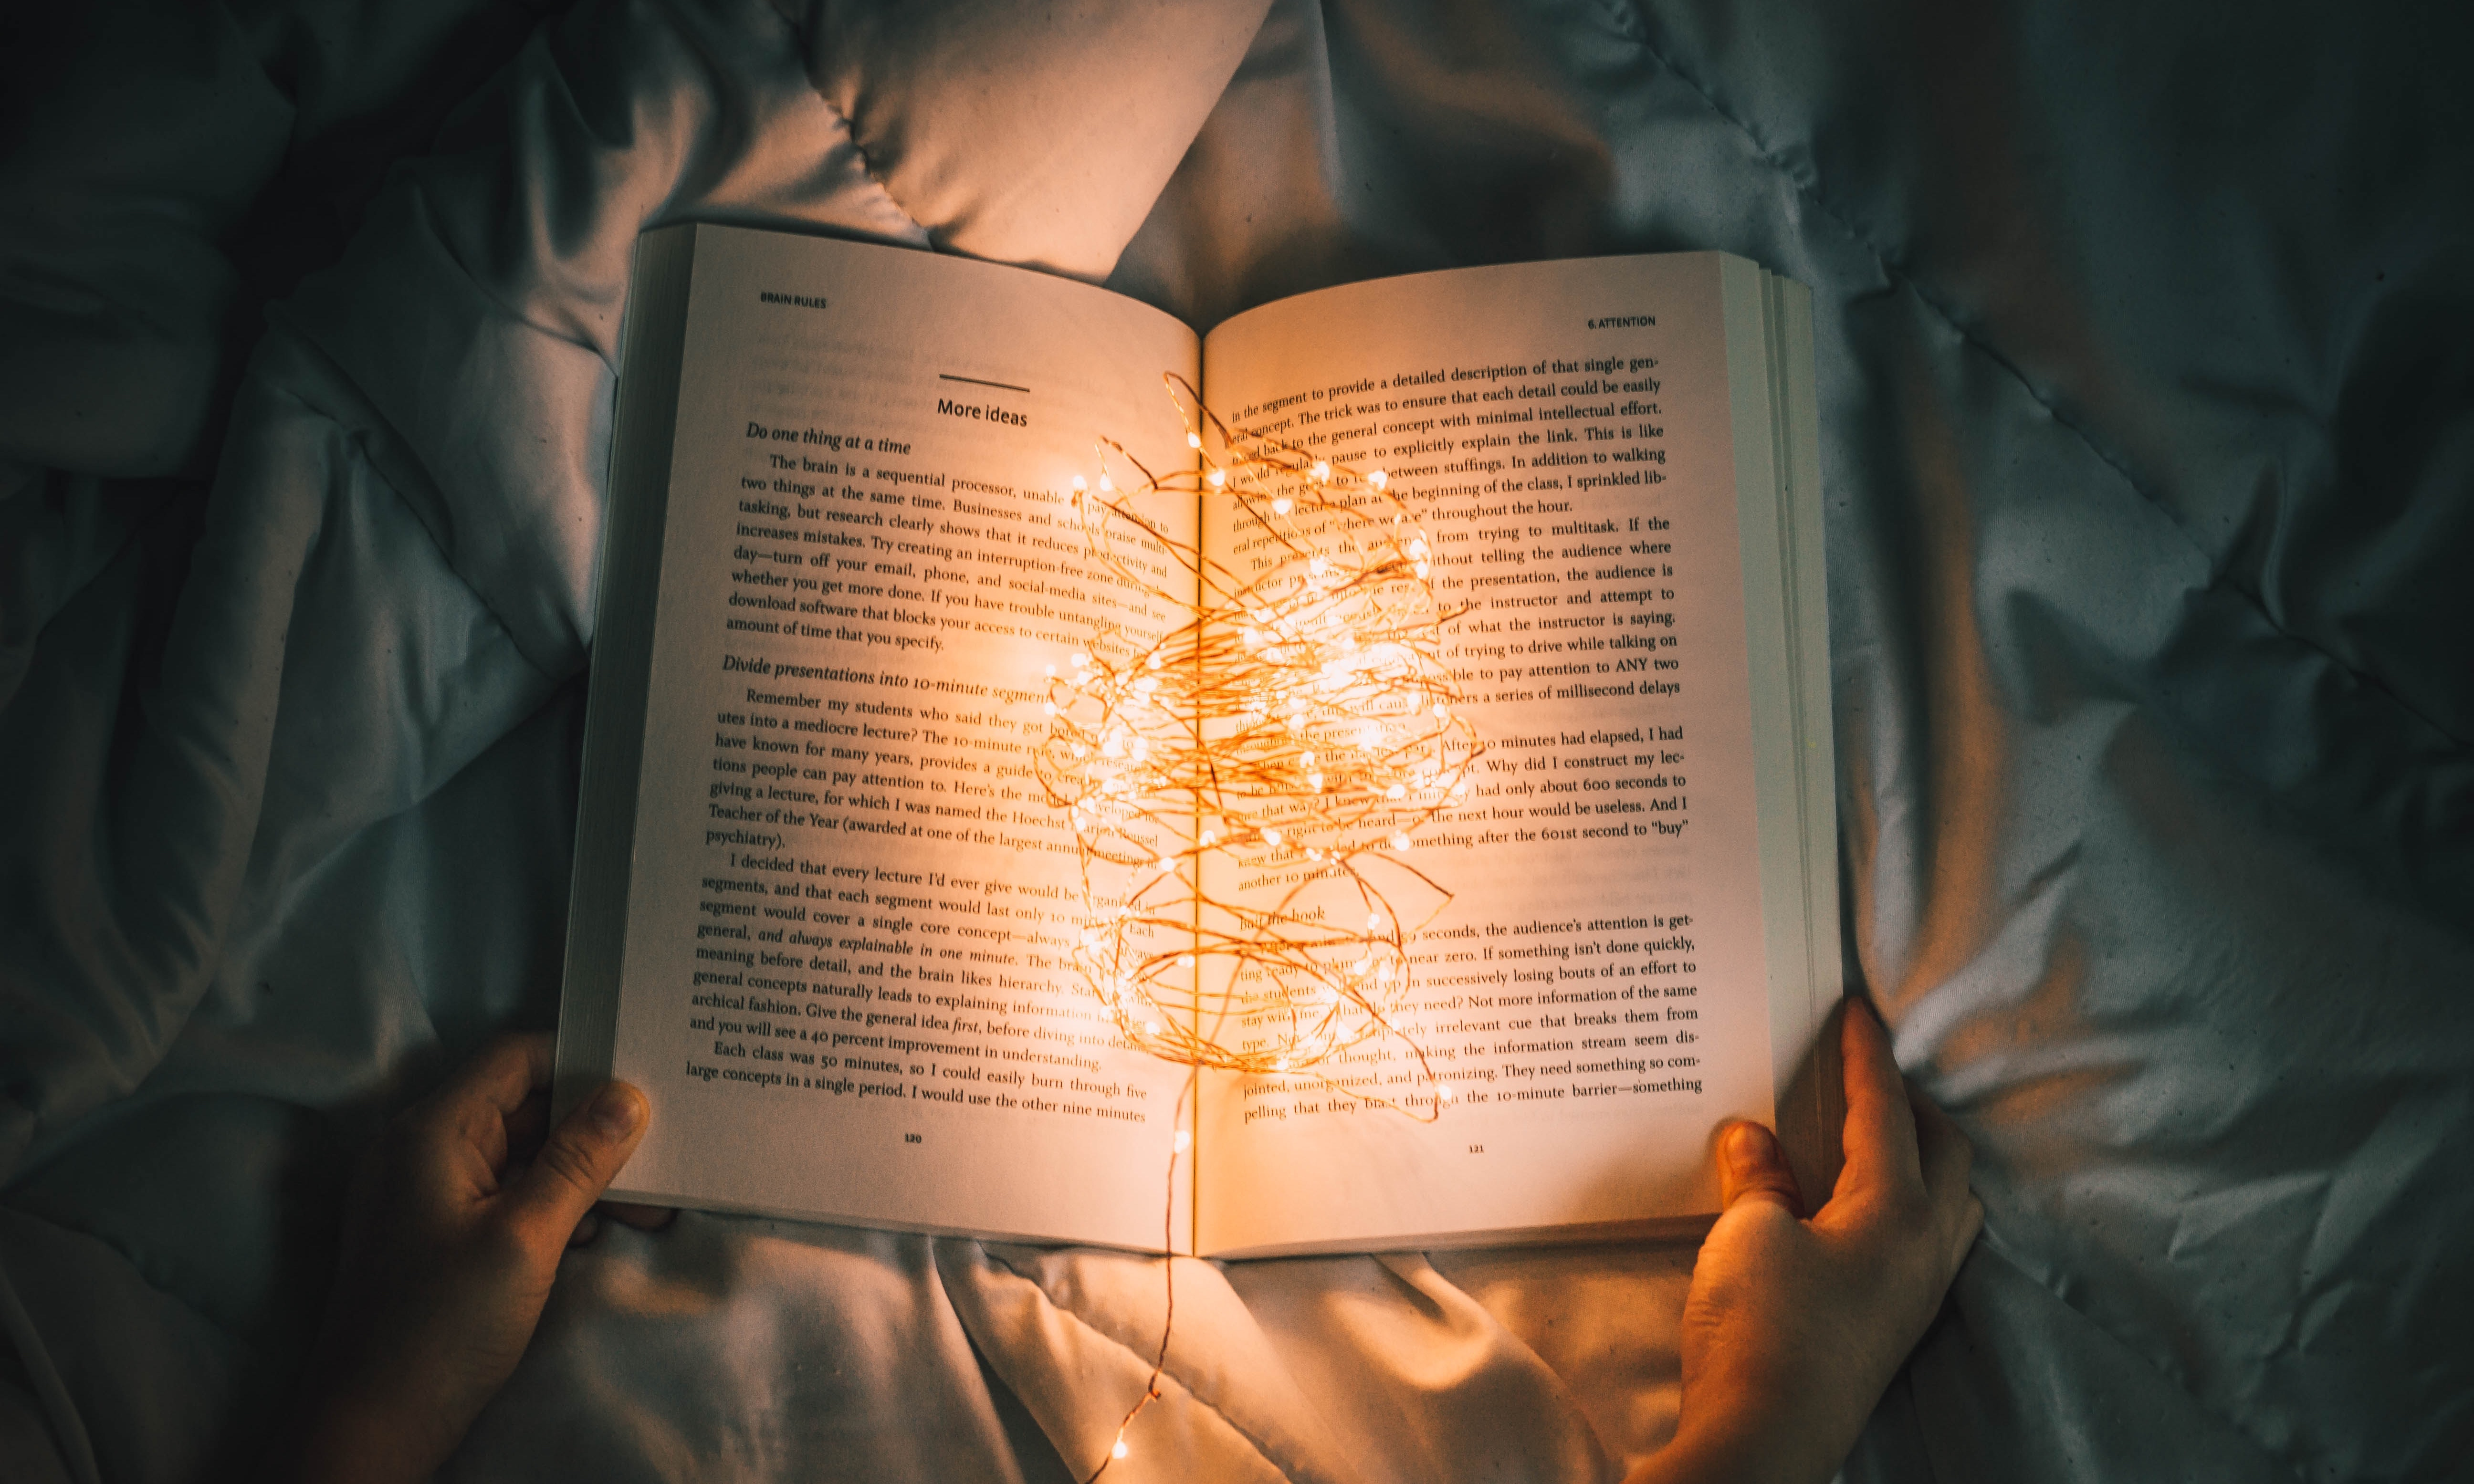 Book with lights on it